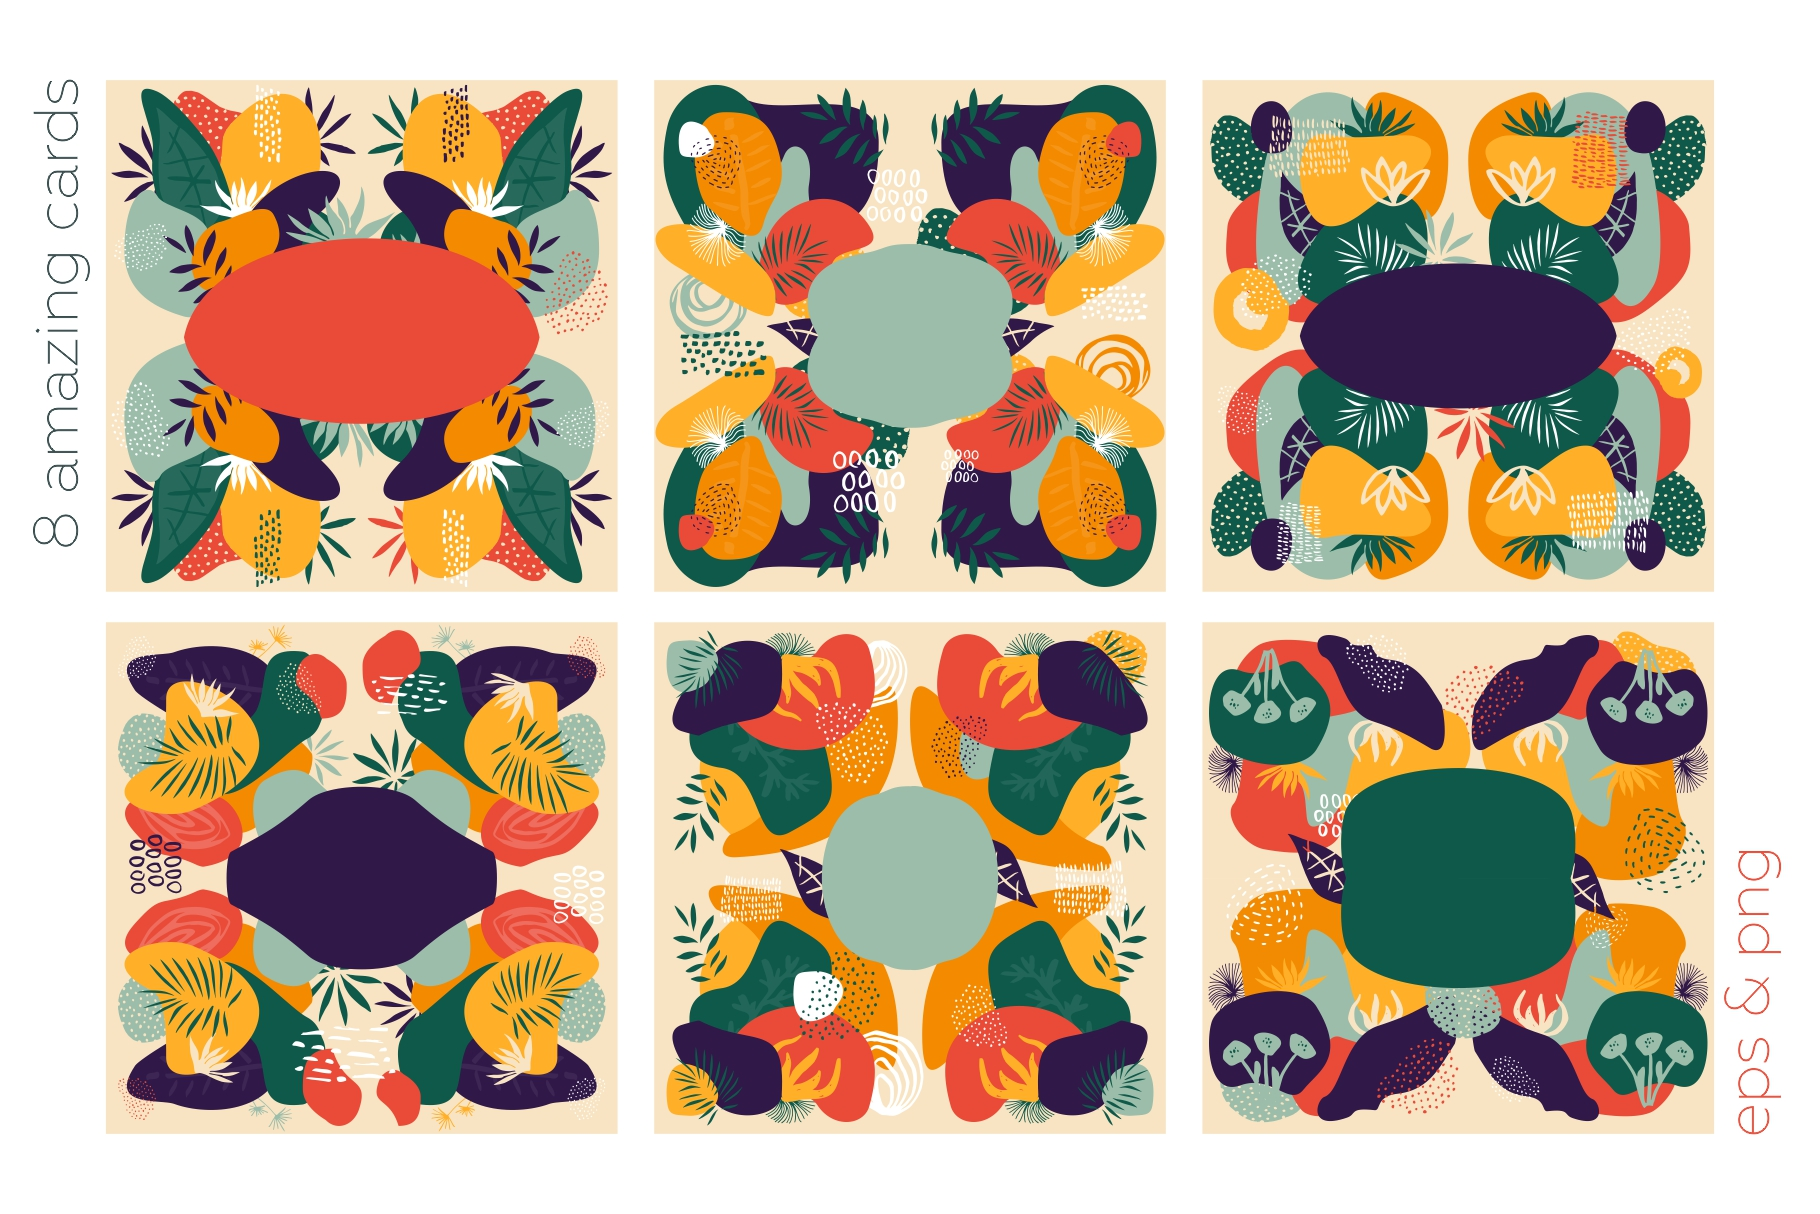 Floralium. Abstract botanical patterns set. example image 8